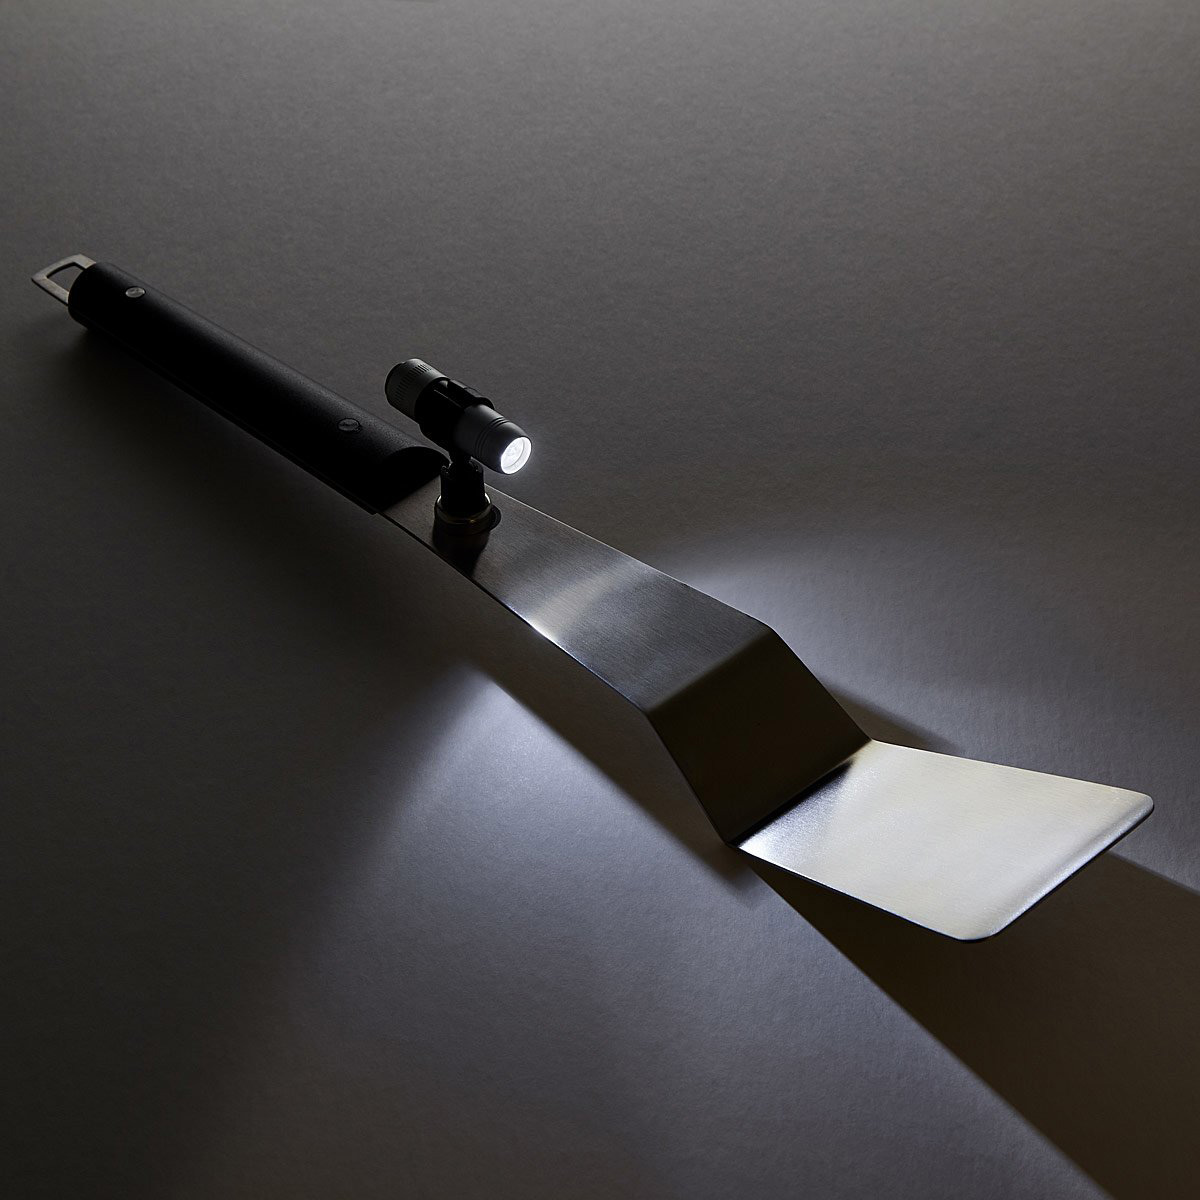 Grilling Spatula with Magnetic Light | UncommonGoods